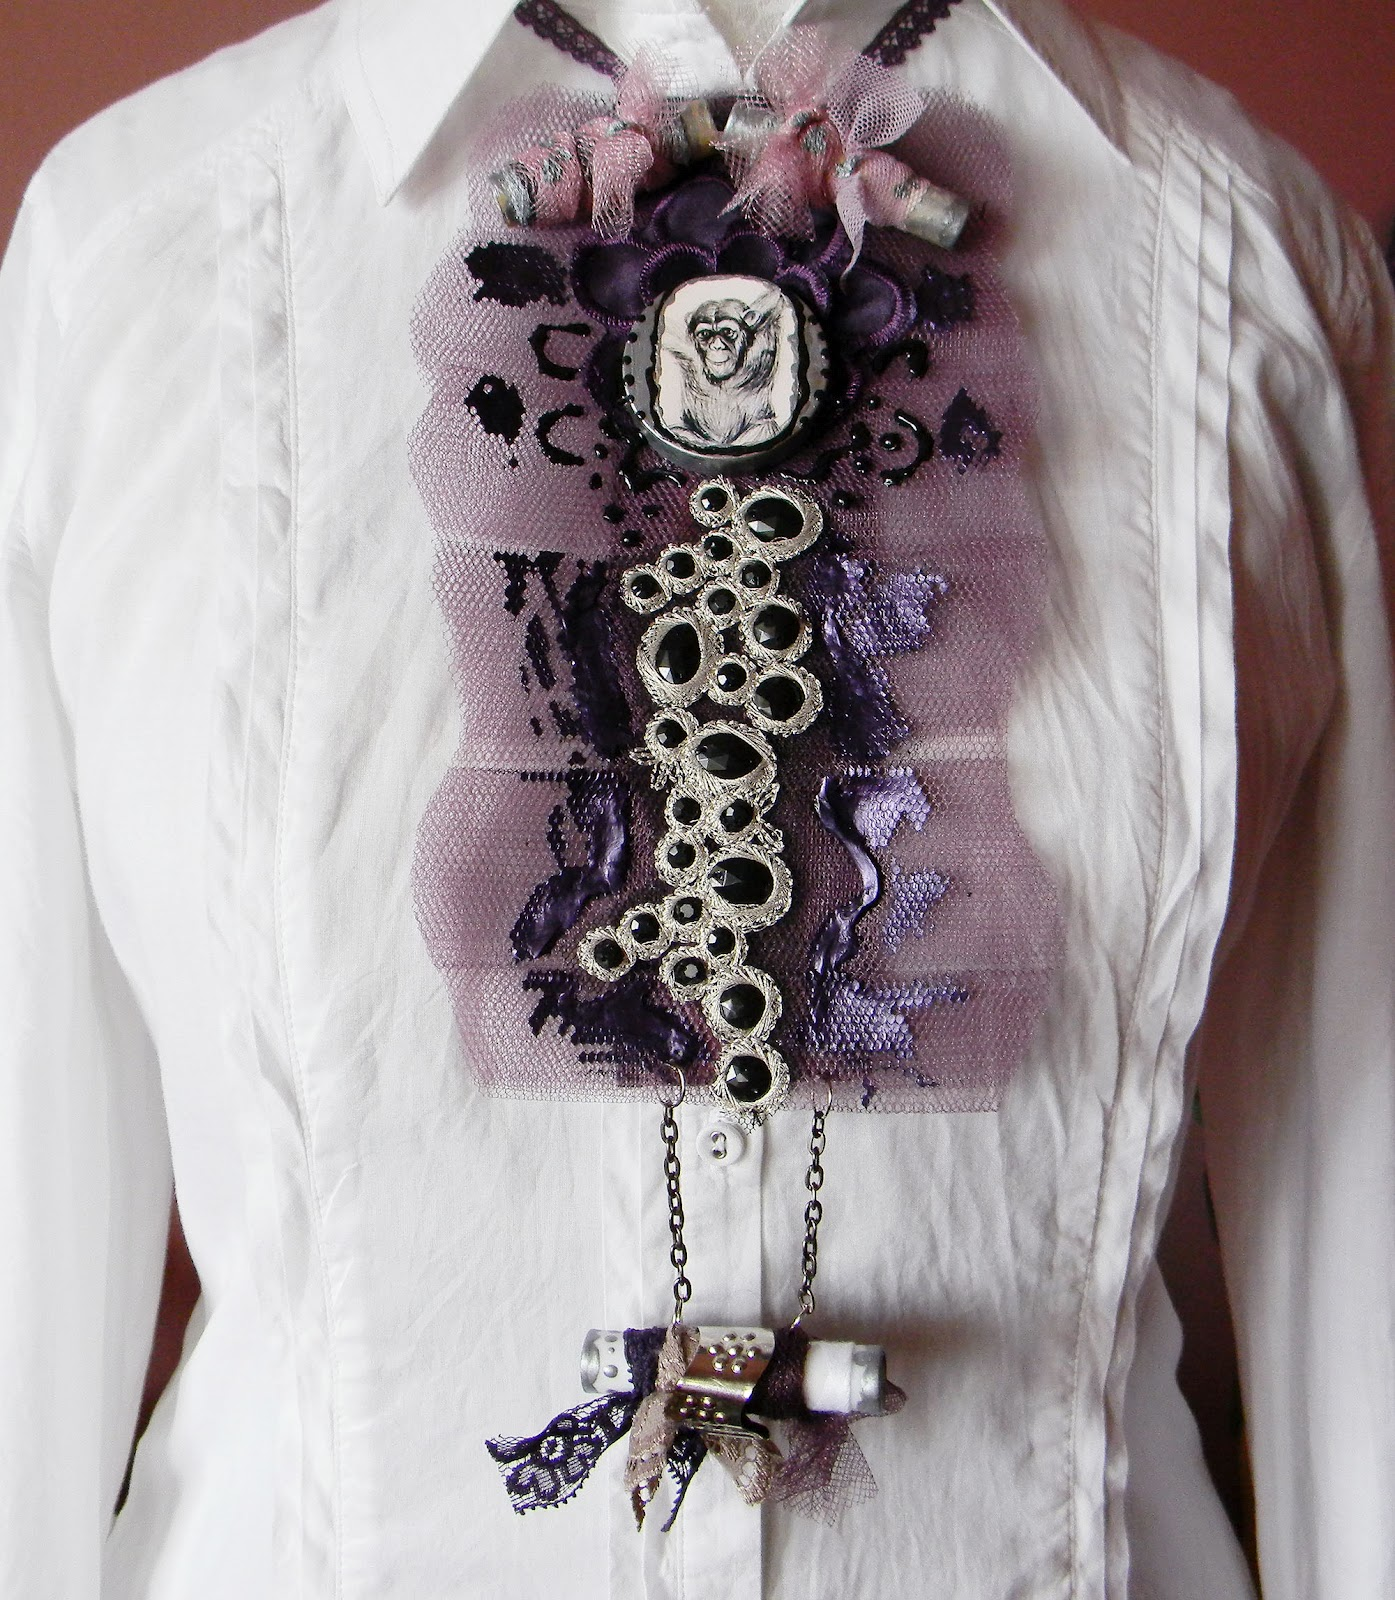 Baroque/Upcycle Jabot/Collar-monkey print deco